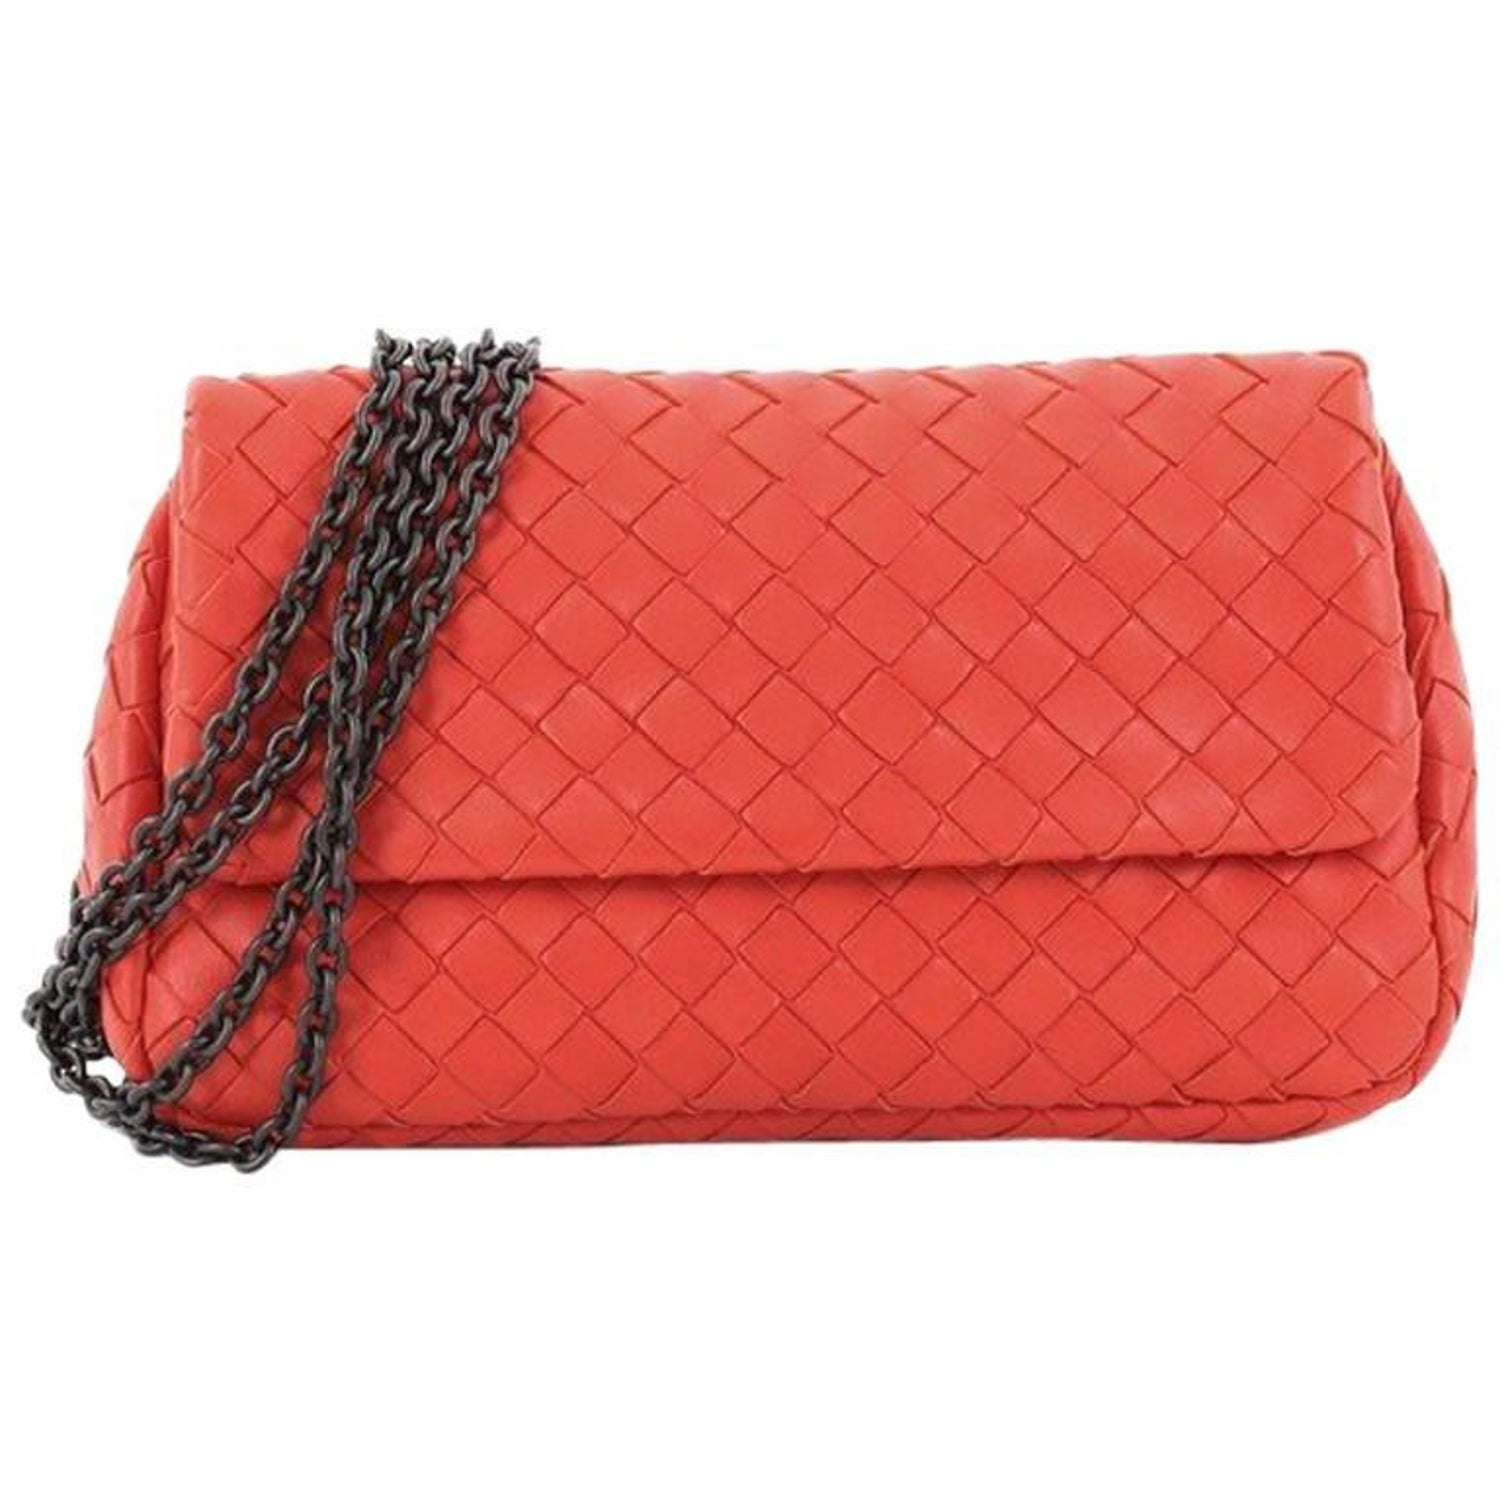 b6cb0f0f7a9b Bottega Veneta Expandable Chain Crossbody Bag Intrecciato Nappa Small at  1stdibs